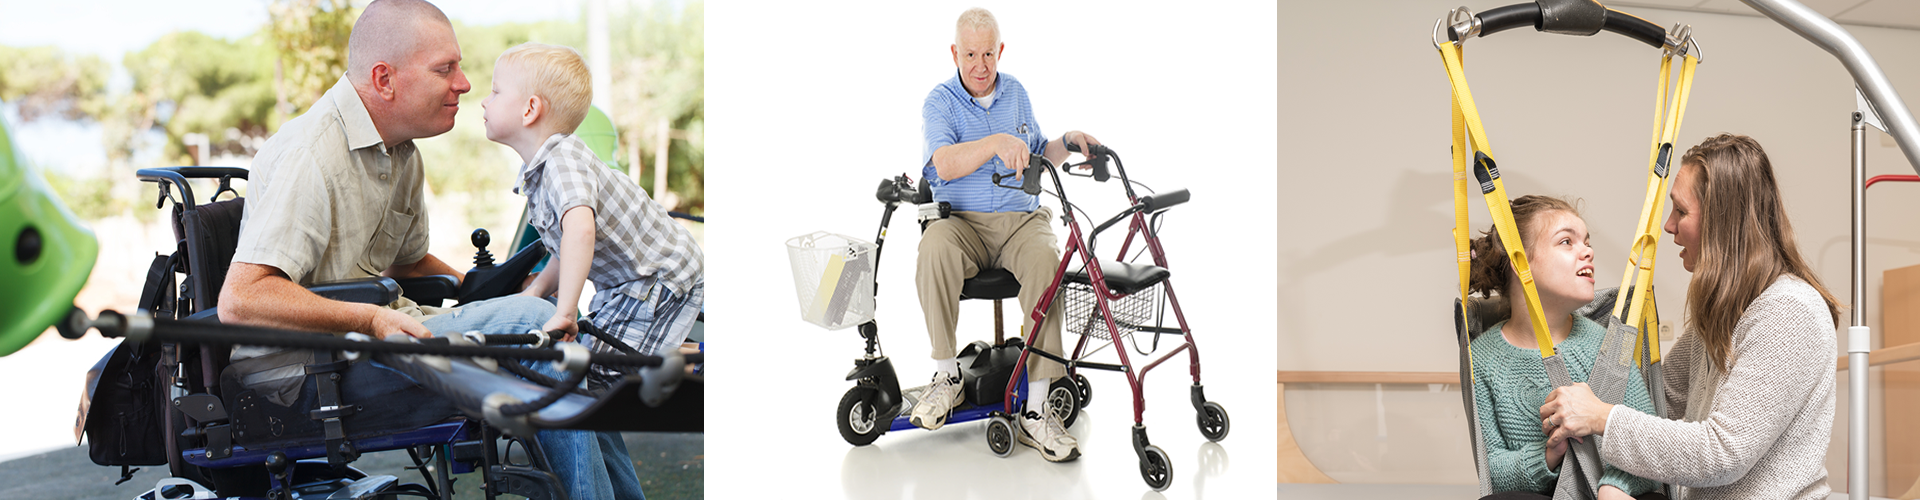 People using assistive technology in daily life